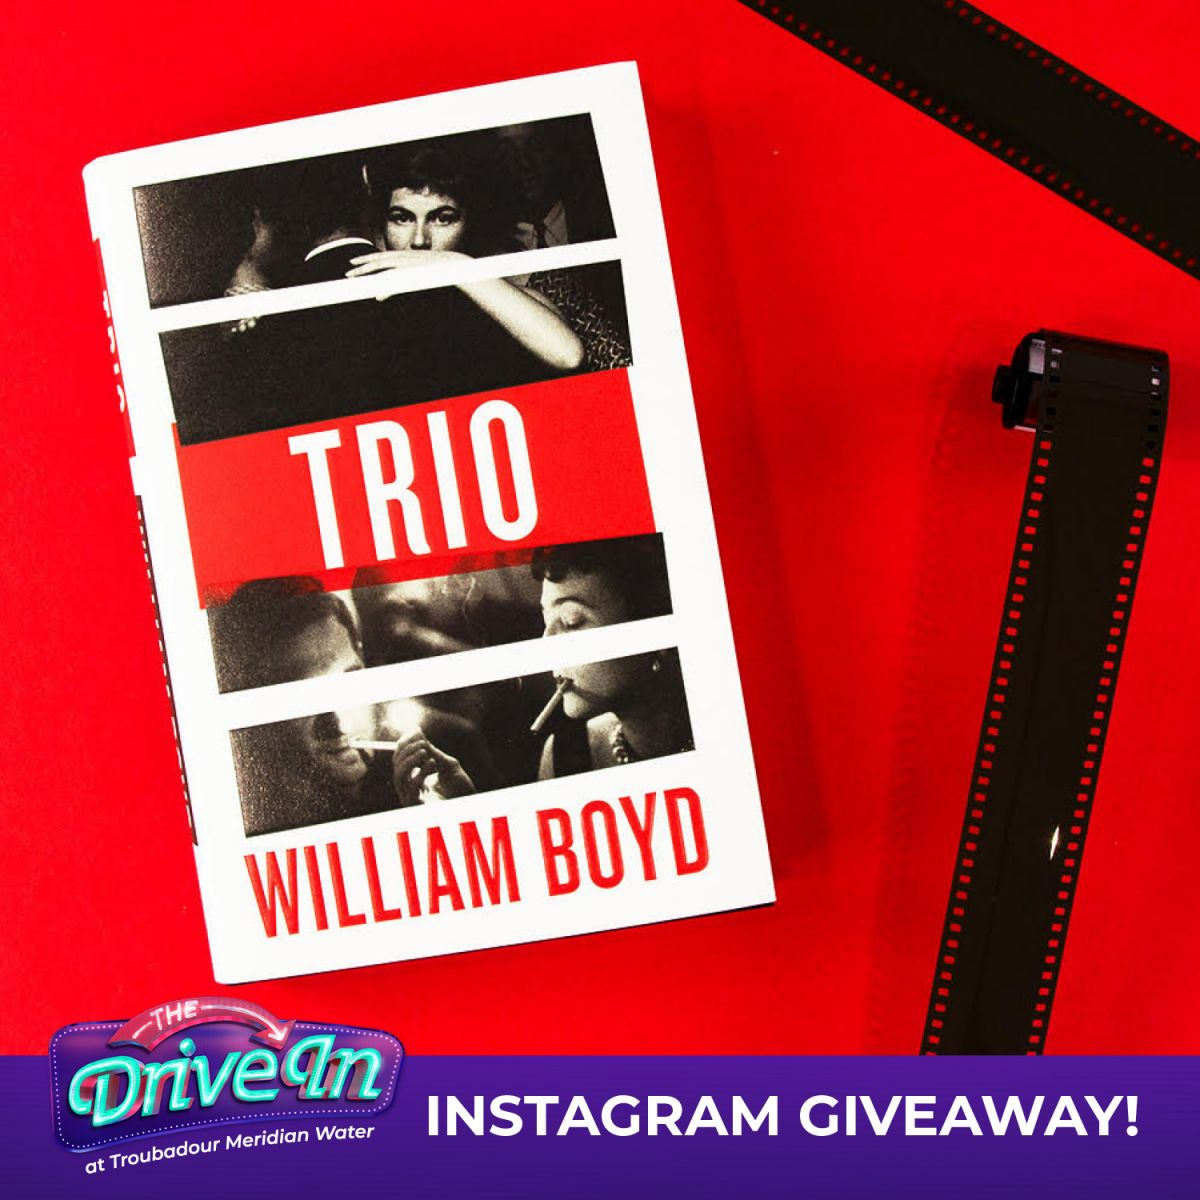 The Drive In Instagram Giveaway: Trio